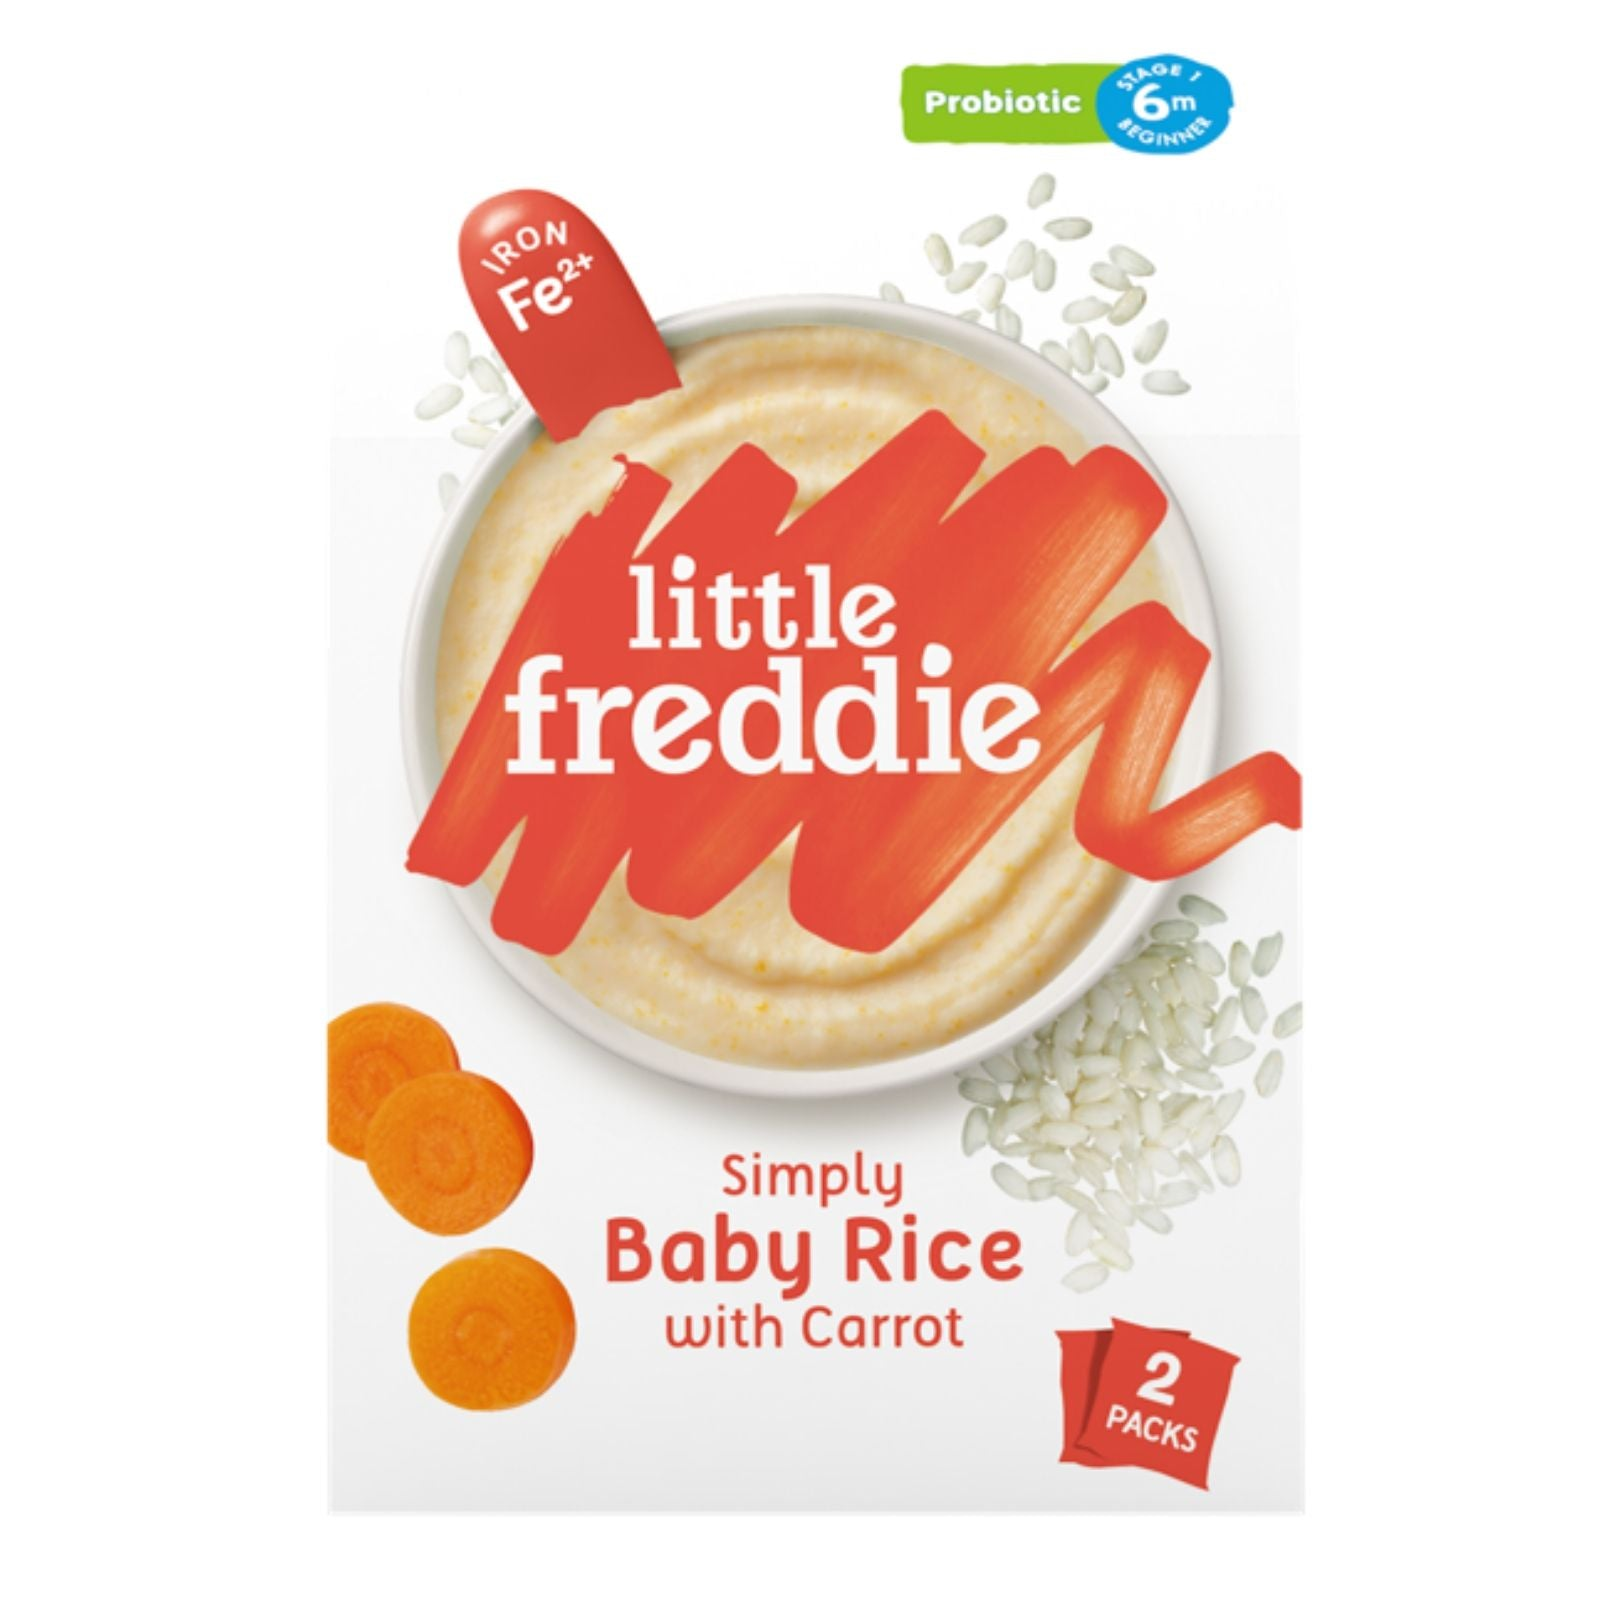 Little Freddie Simply Baby Rice with Carrot  (Probiotics) 160g